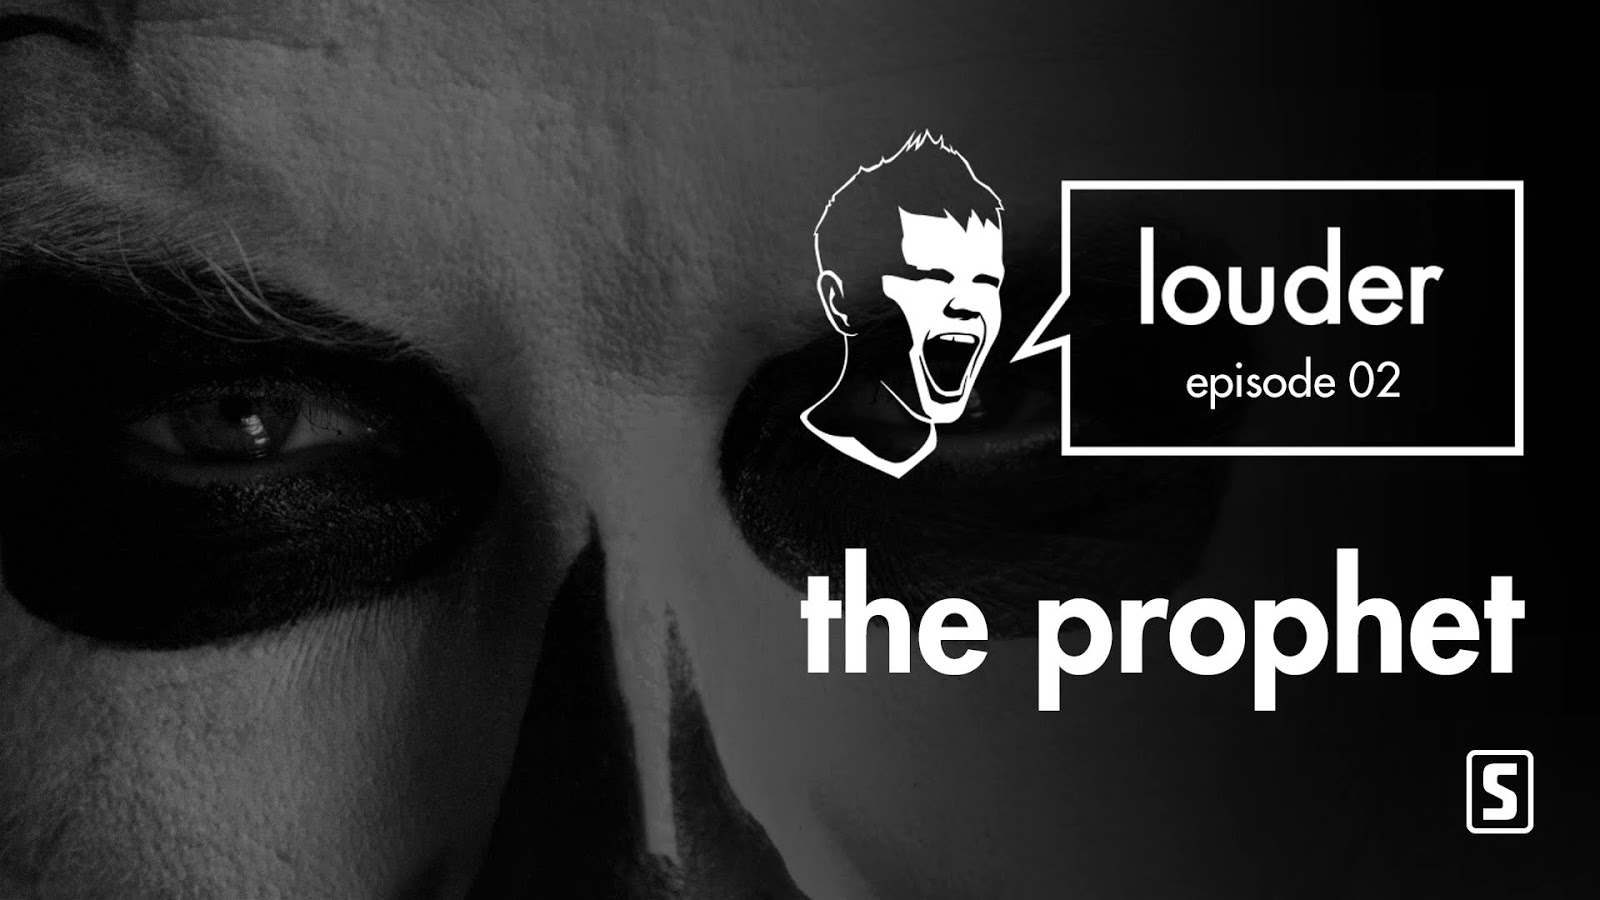 LOUDER - Episode 02 by The Prophet Thumbnail